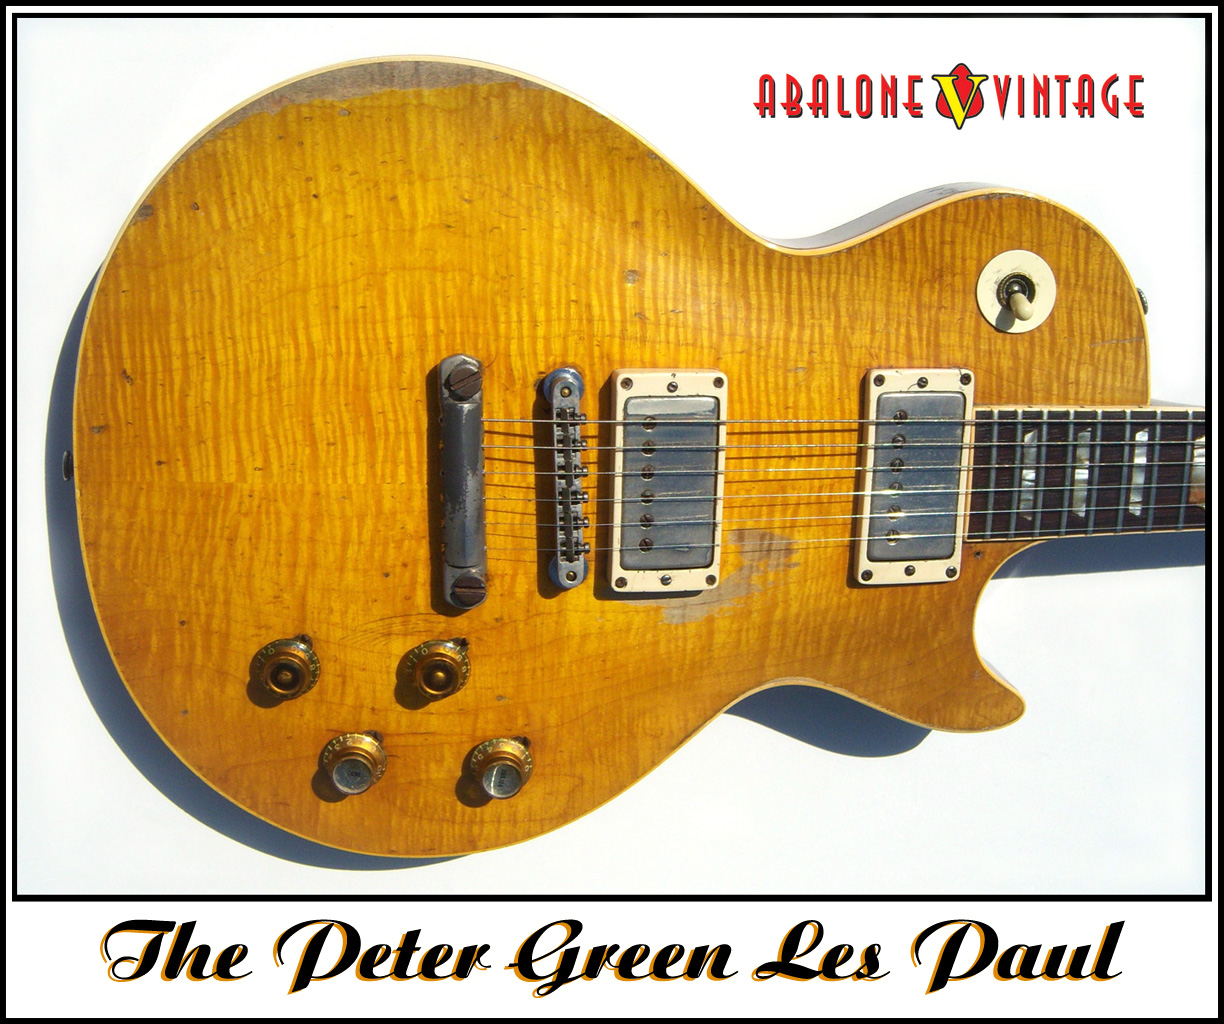 The Peter Green Mod Once Again How To Rewire A Guitar Pickup Les Paul